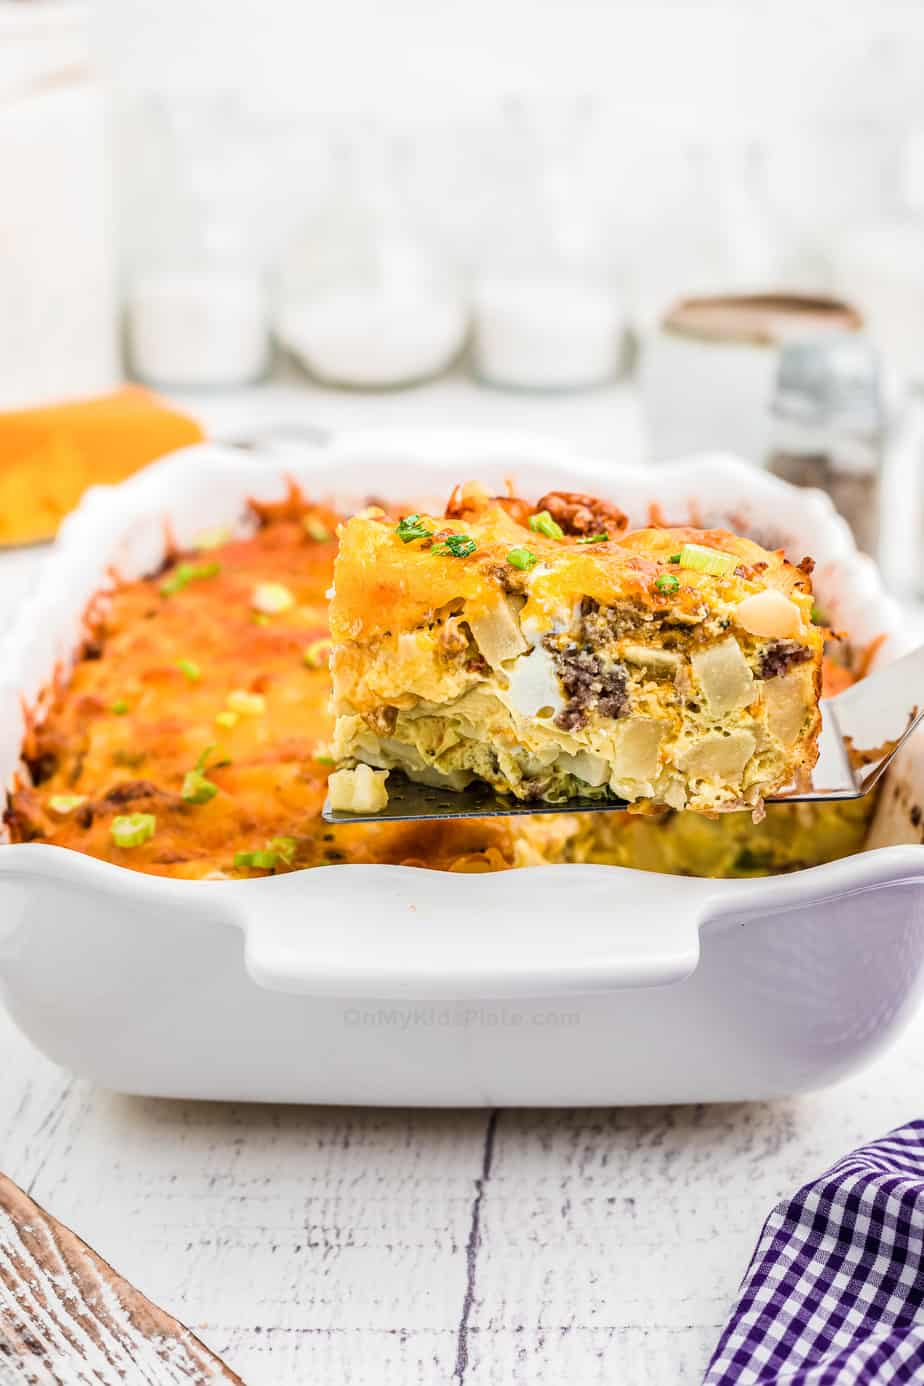 Slice of breakfast casserole being lifted from the pan with a spatula showing the egg, sausage and potato in the sllice.